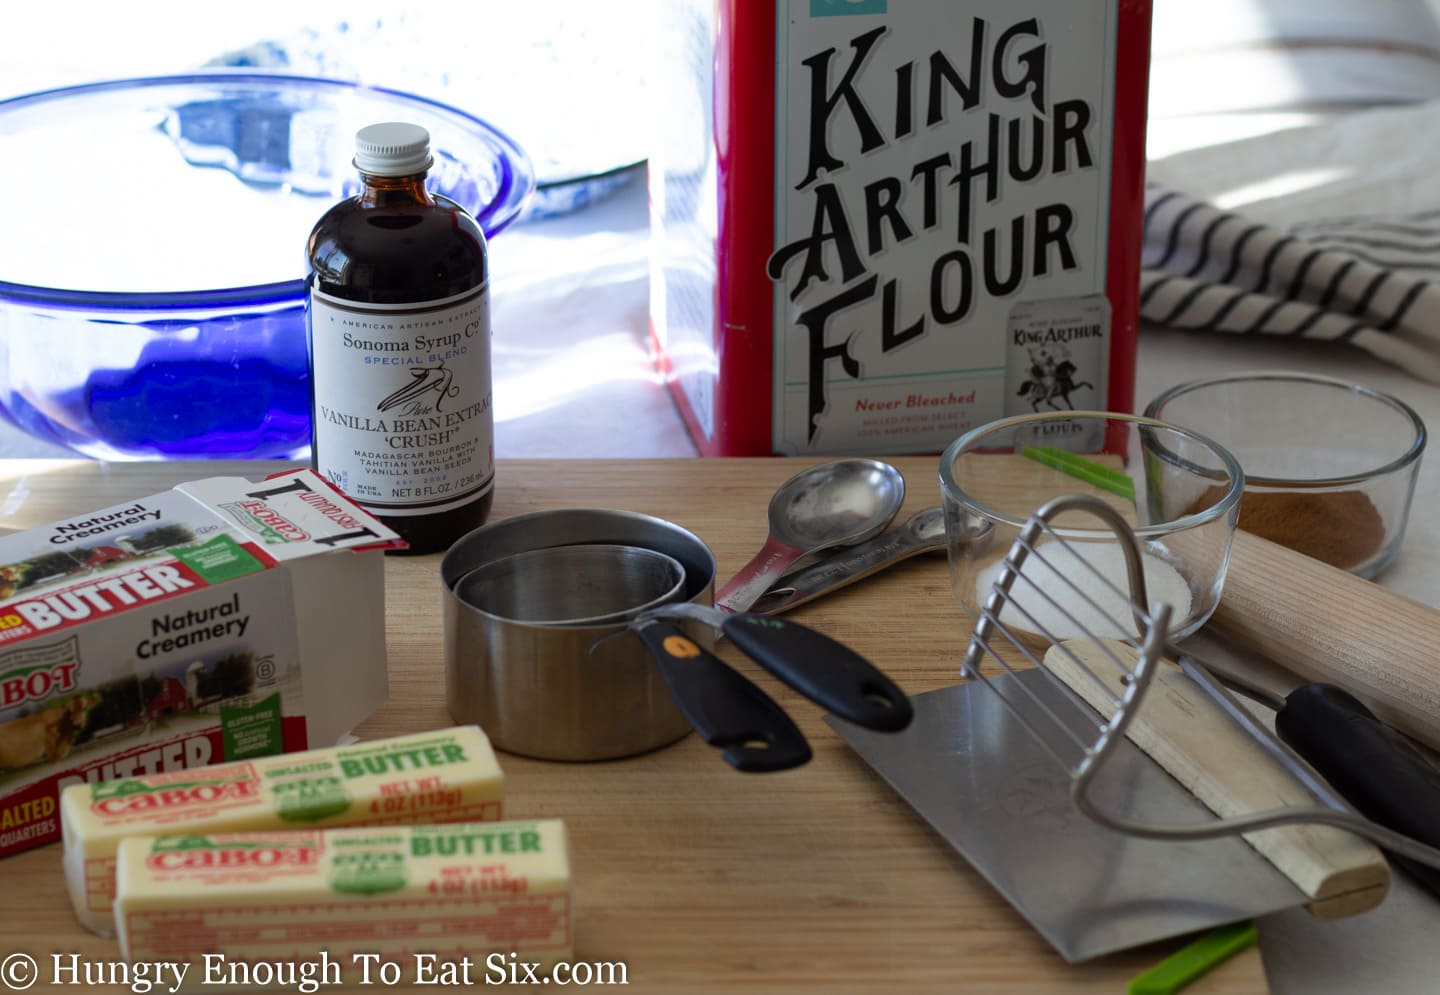 Ingredients and equipment to make pie crust dough